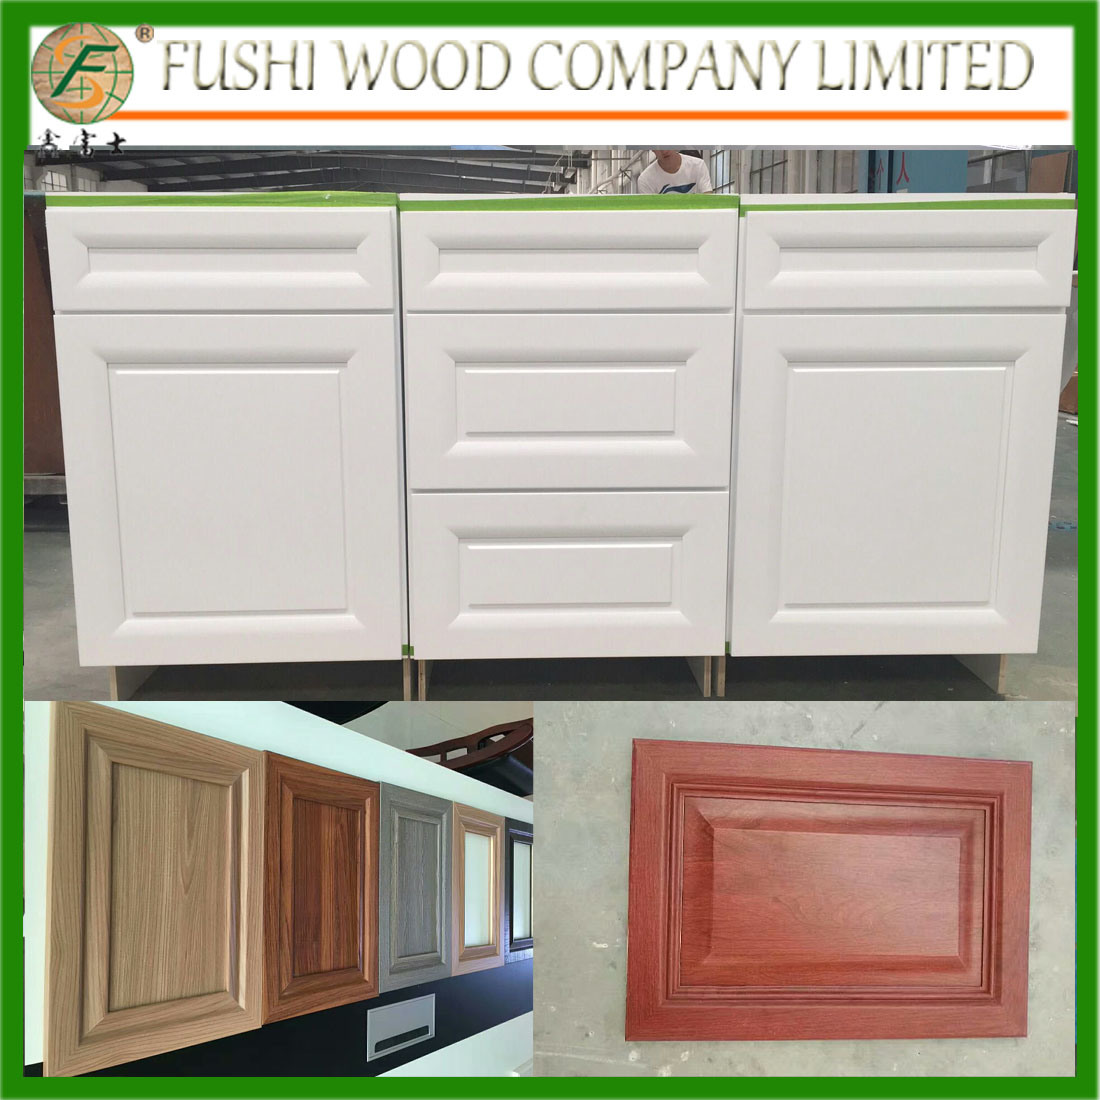 Kitchen Cabinet - Shandong Fushi Wood Co., Ltd. - page 1.